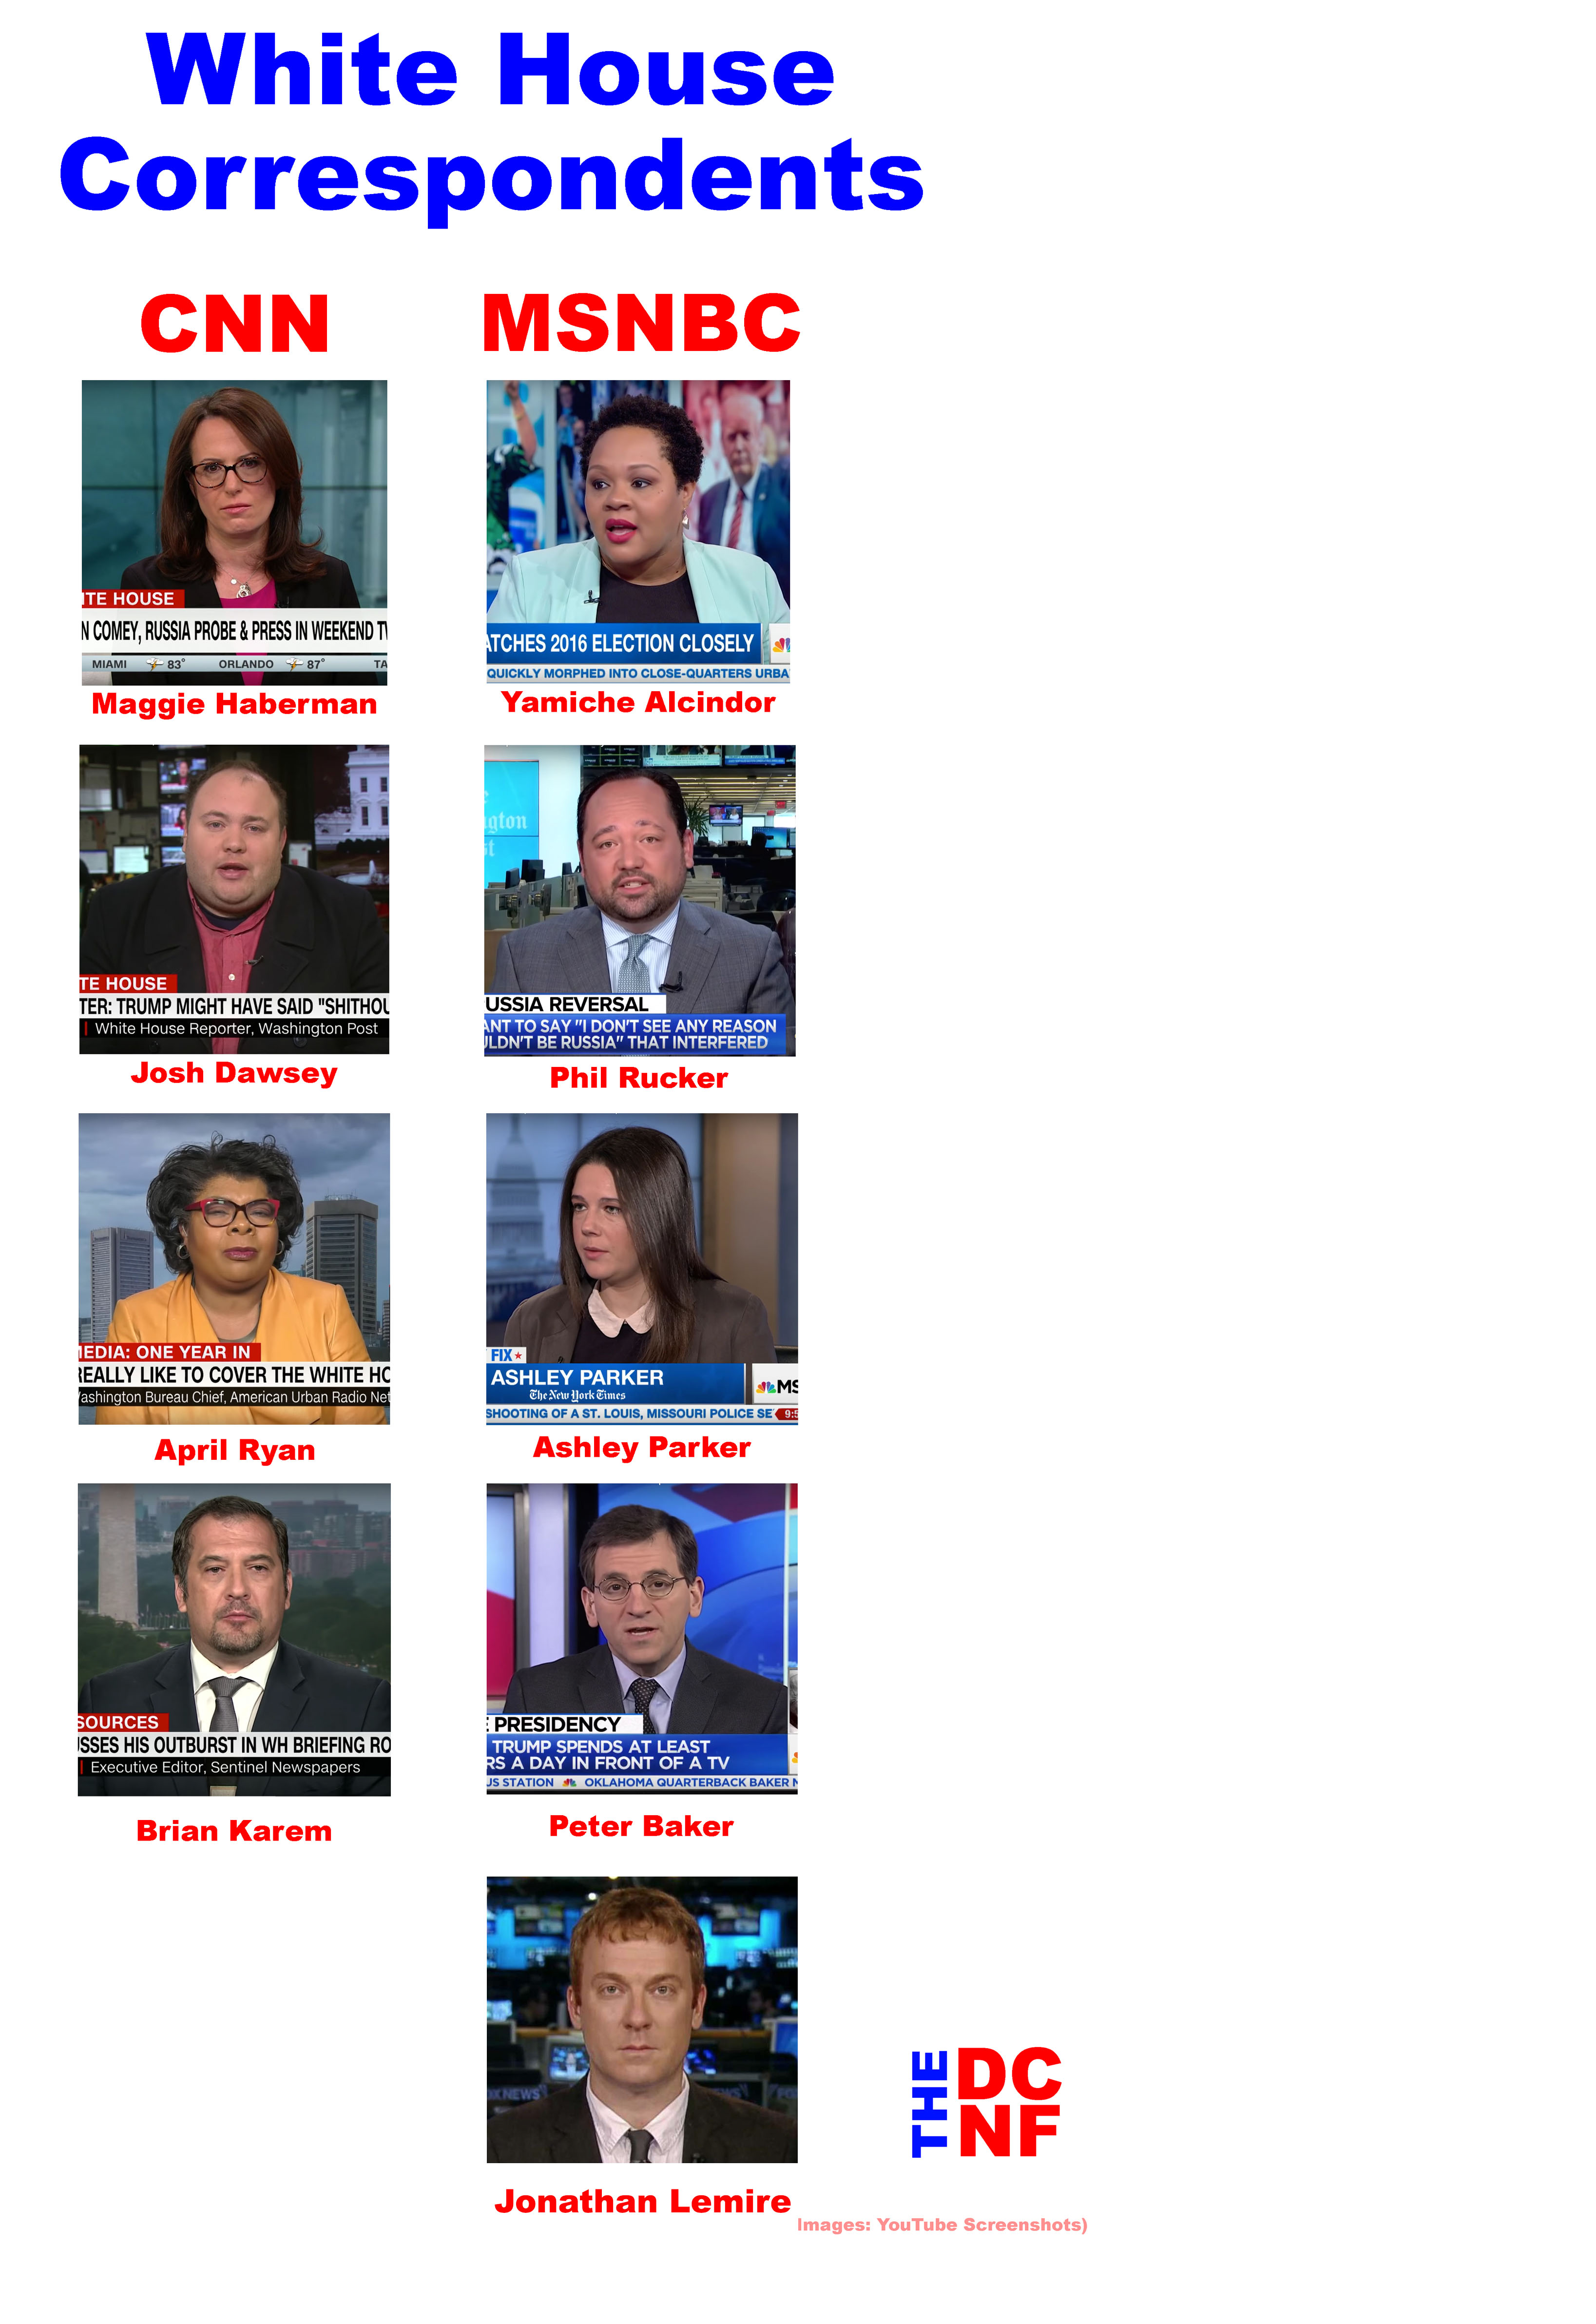 All the reporters who are also employees of CNN and MSNBC (TheDCNF)